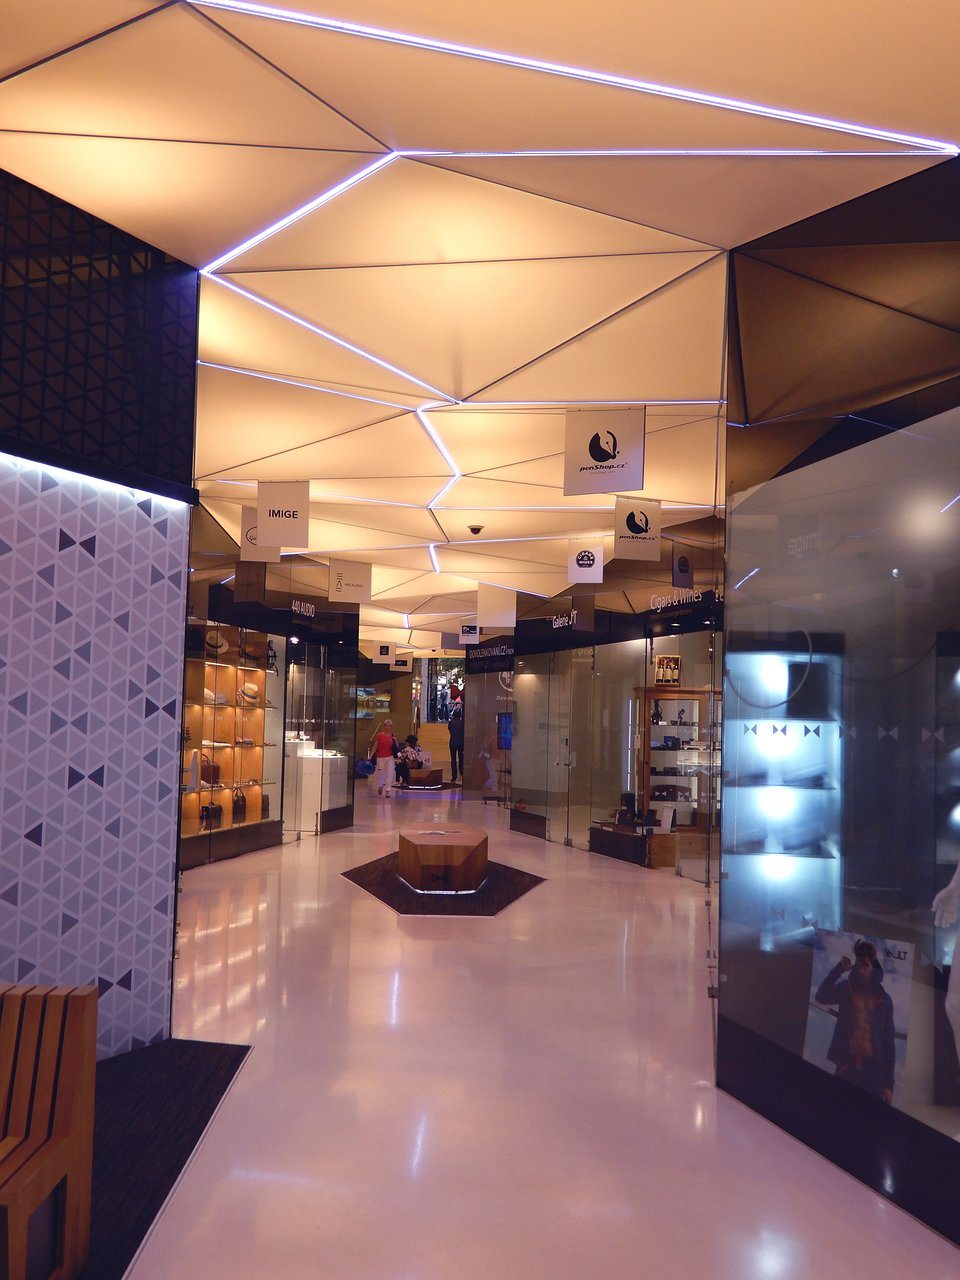 Myslbek Shopping Gallery Prague 2020 All You Need To Know Before You Go With Photos Tripadvisor